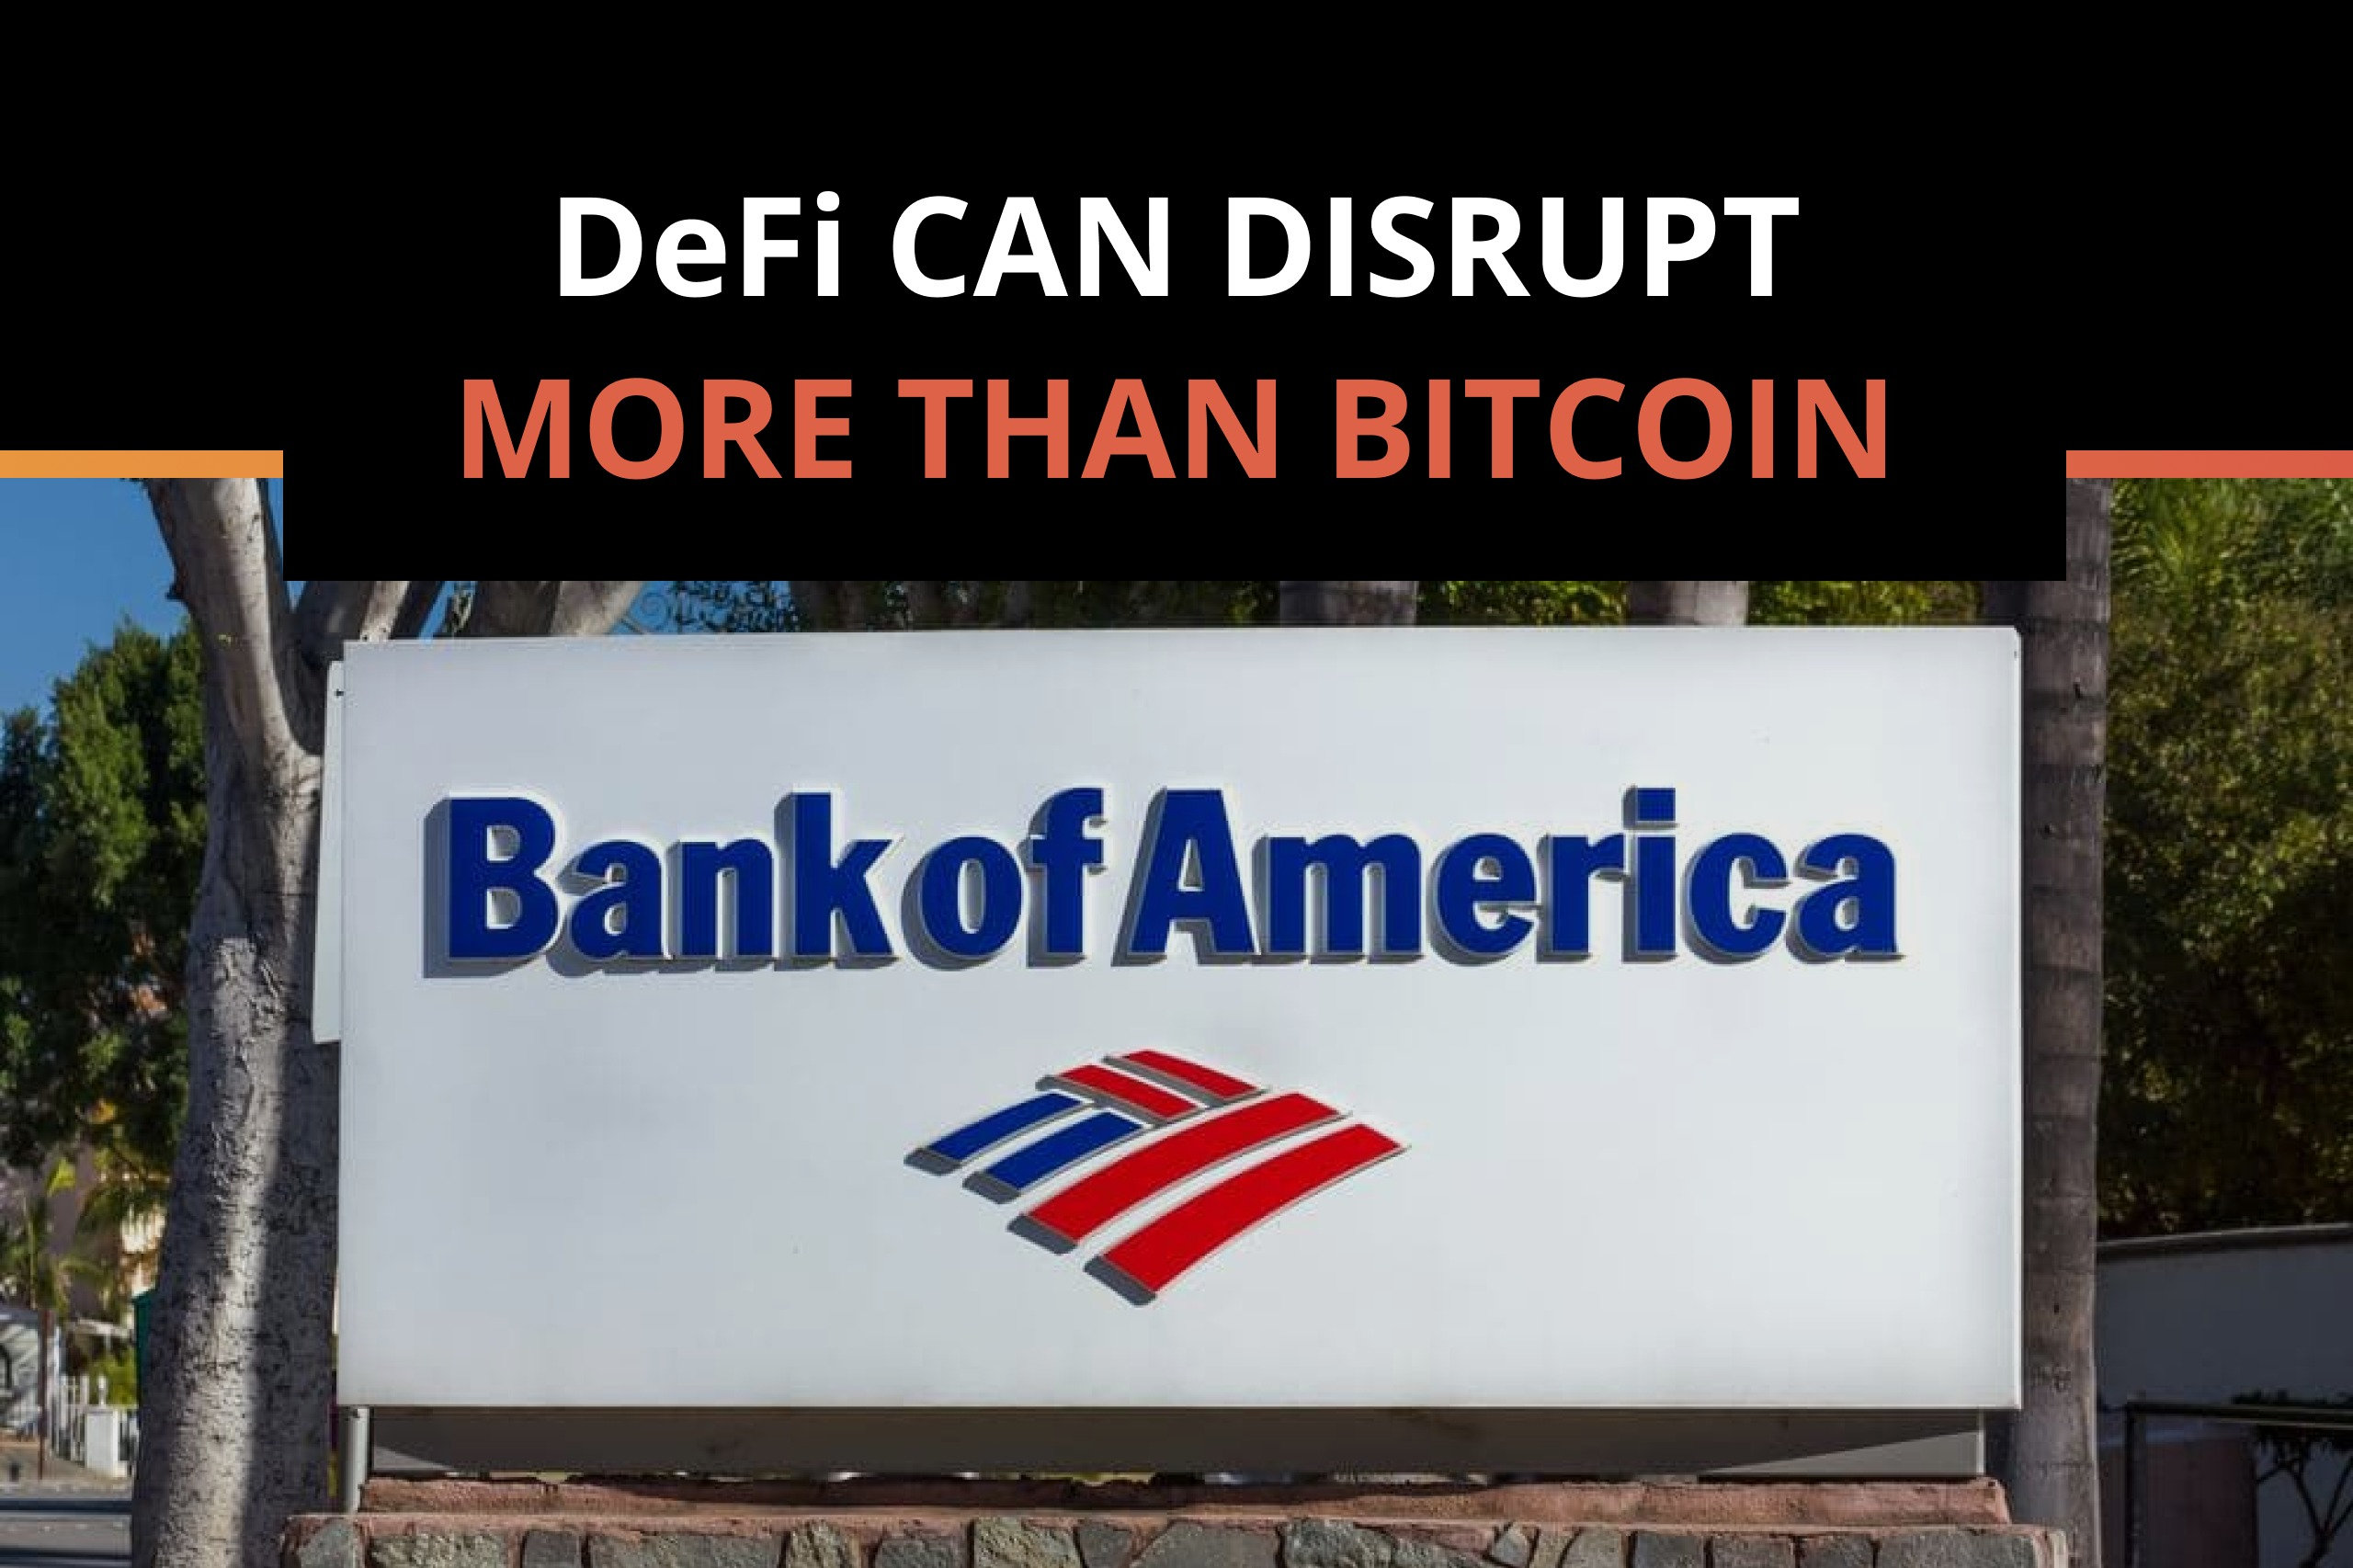 Decentralized Finance Can Disrupt More Than Bitcoin